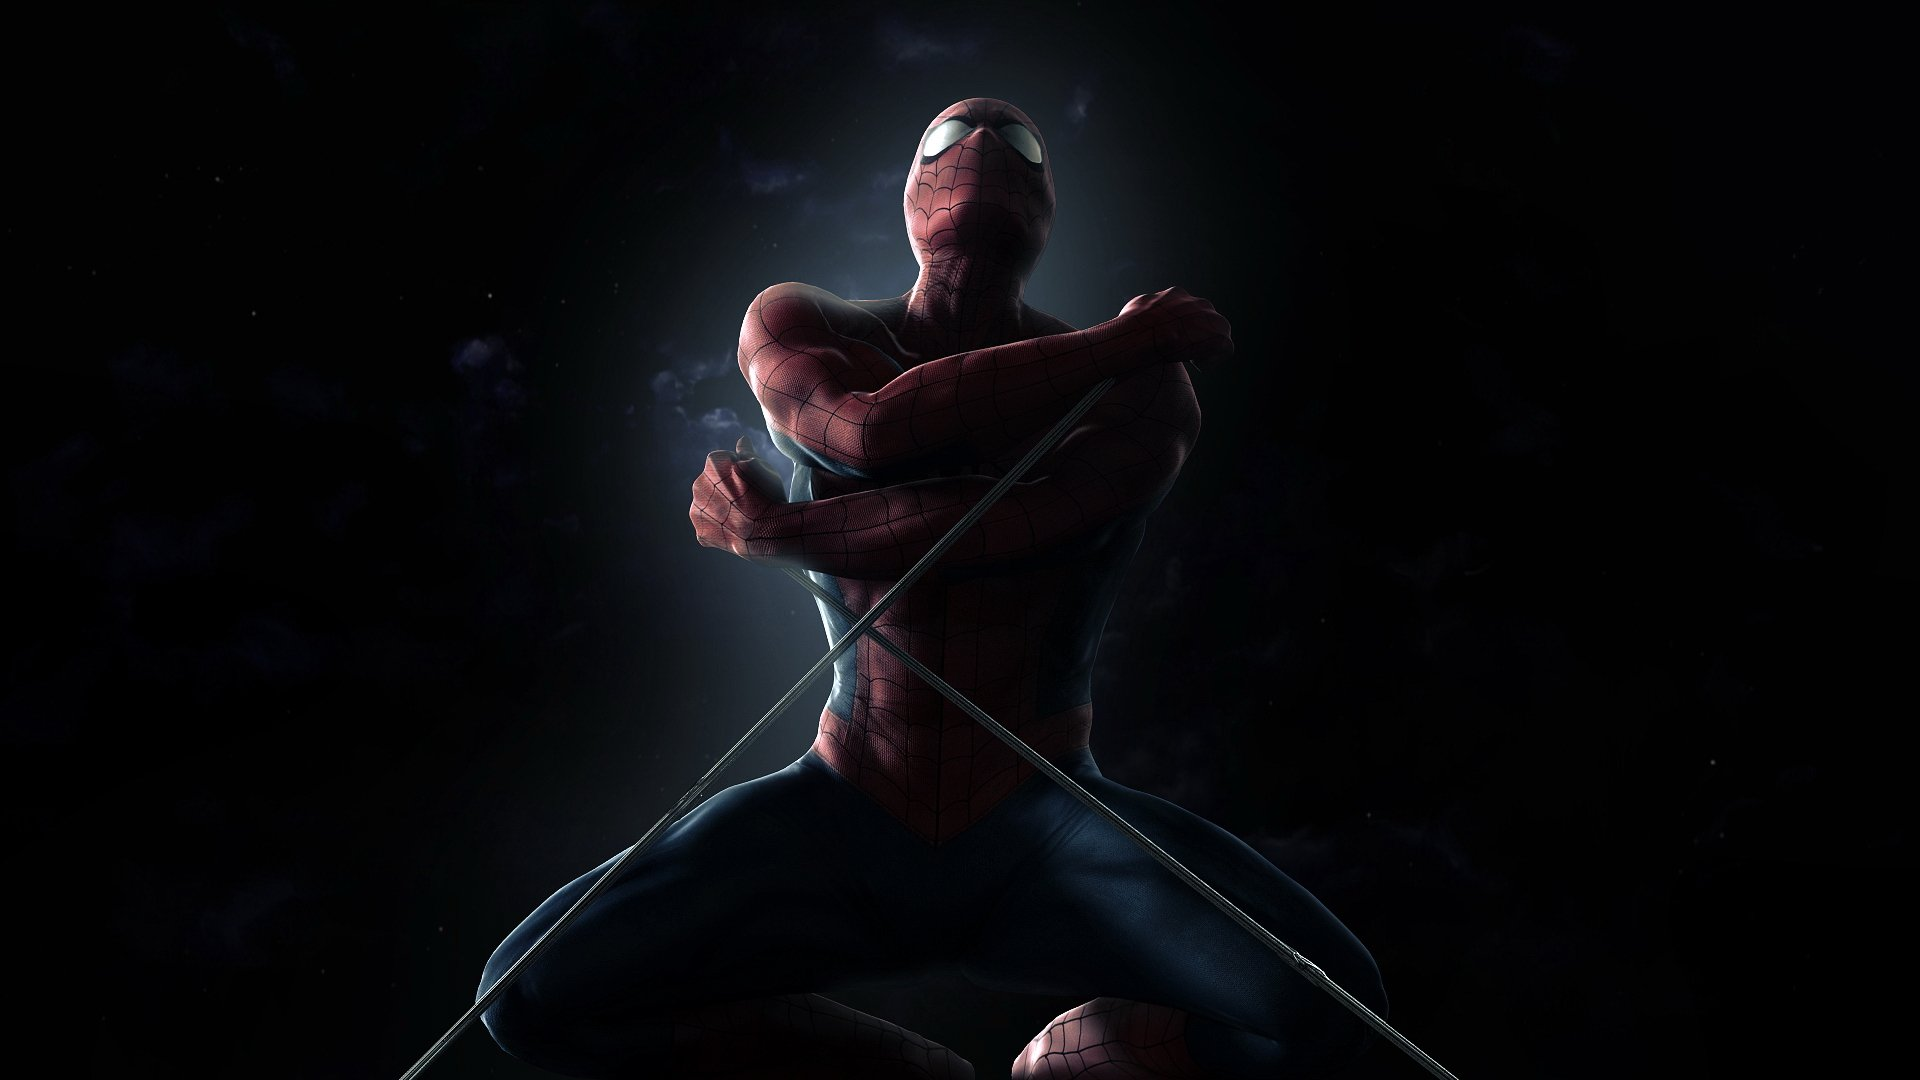 Animated Spider Wallpaper